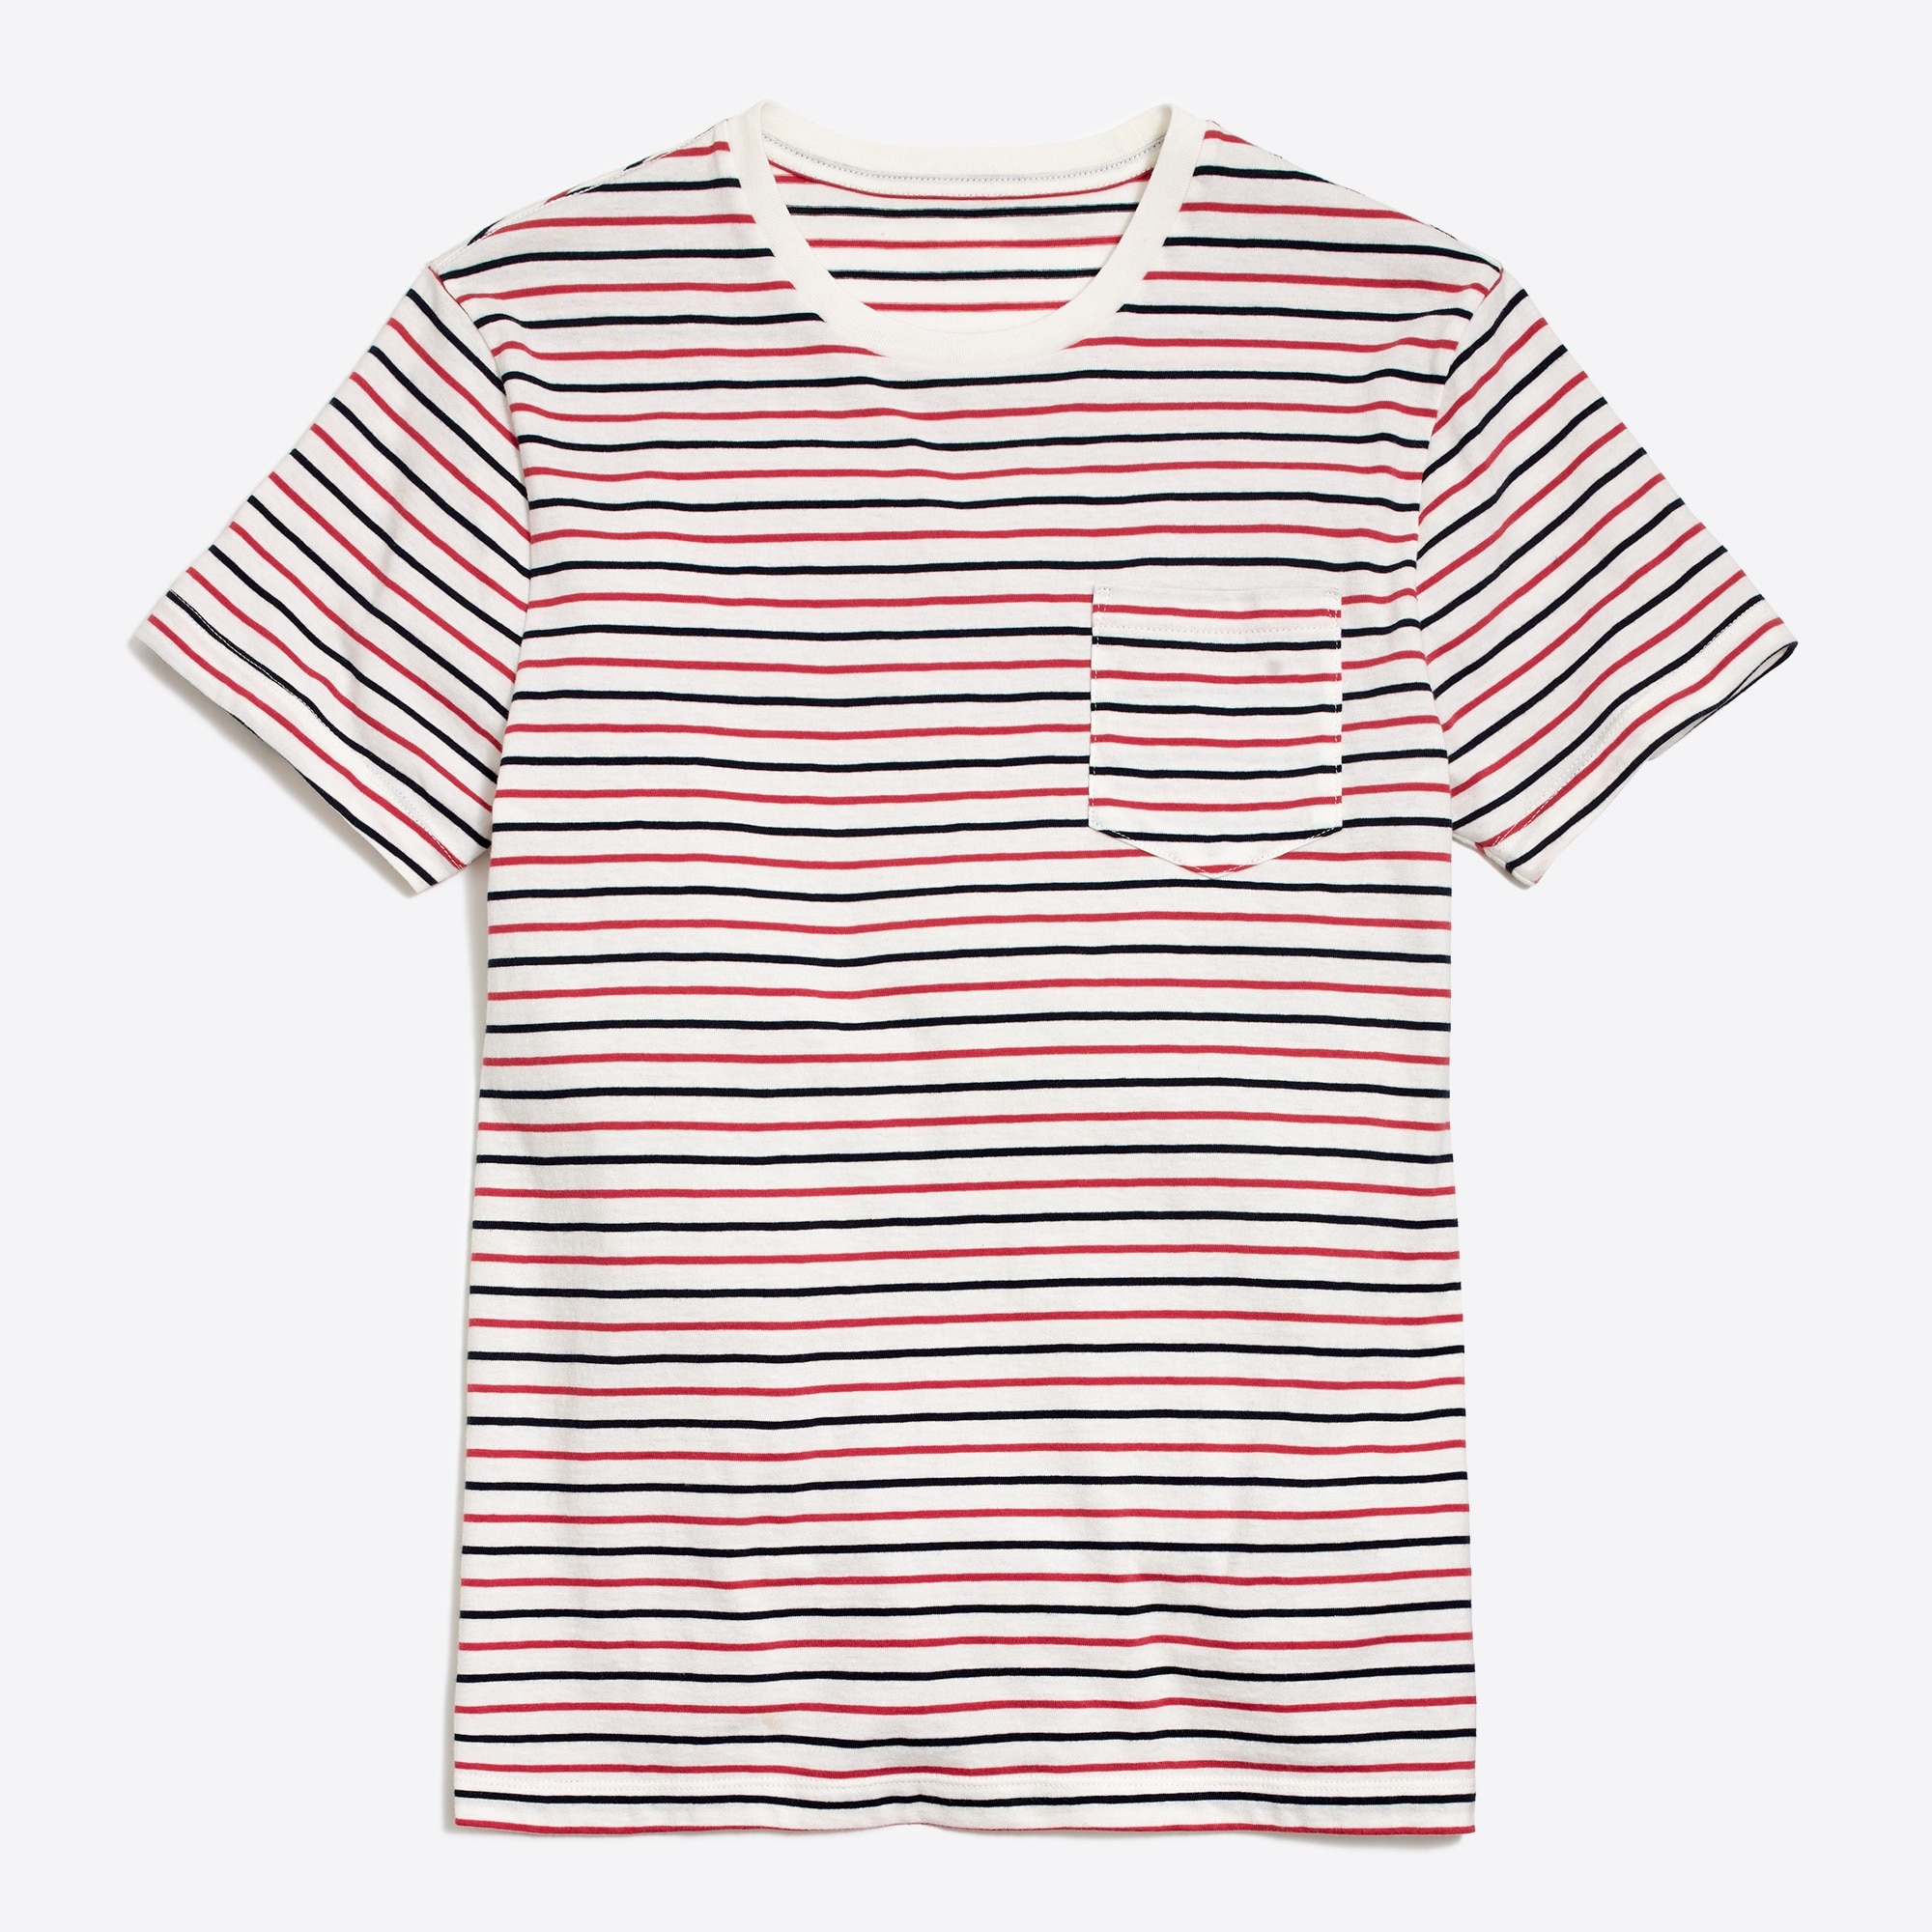 Image 2 for J.Crew Mercantile Broken-in seaside striped T-shirt